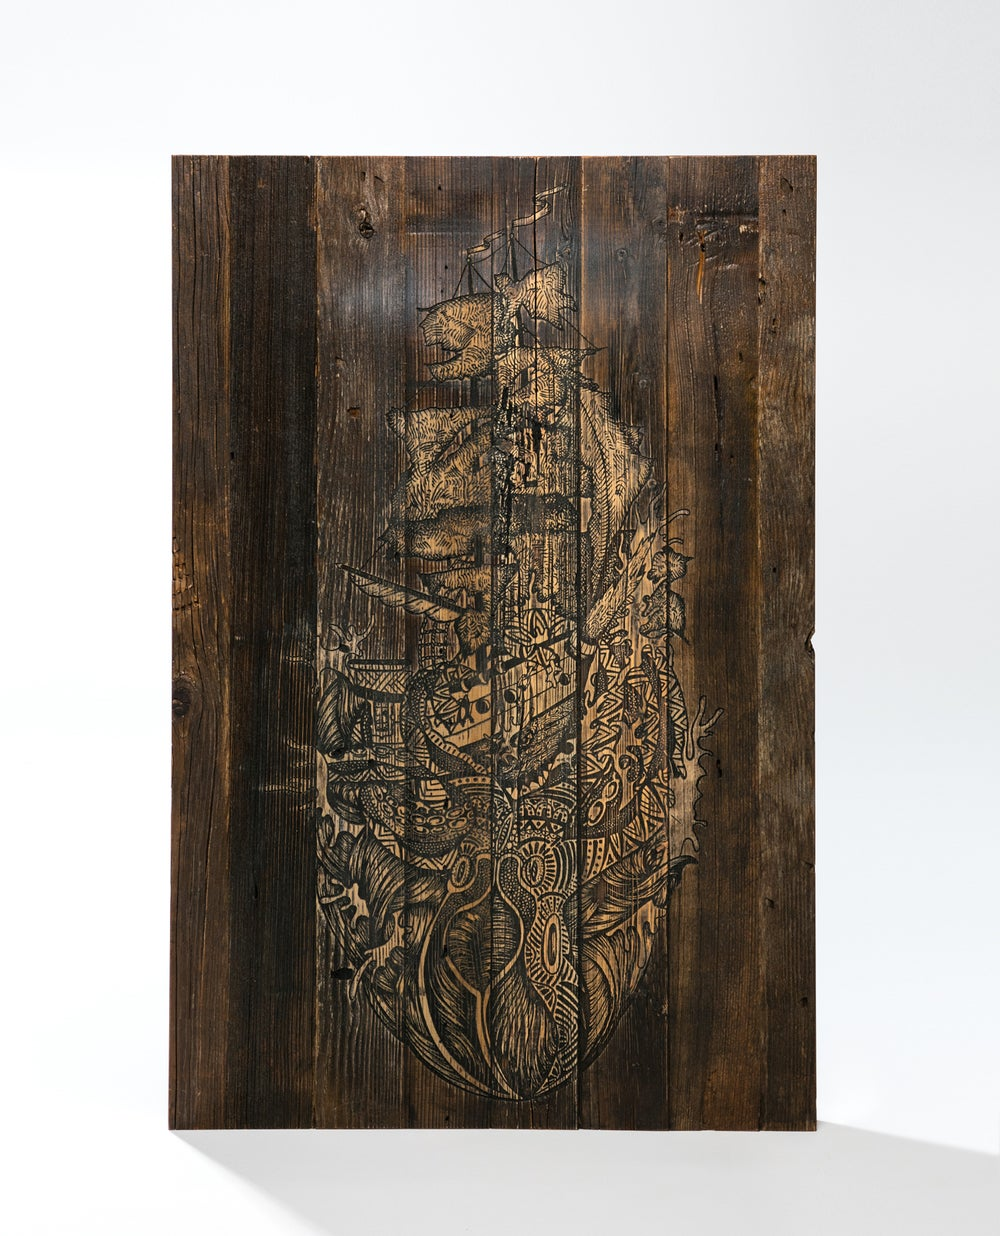 Image of Reclaimed wood kraken